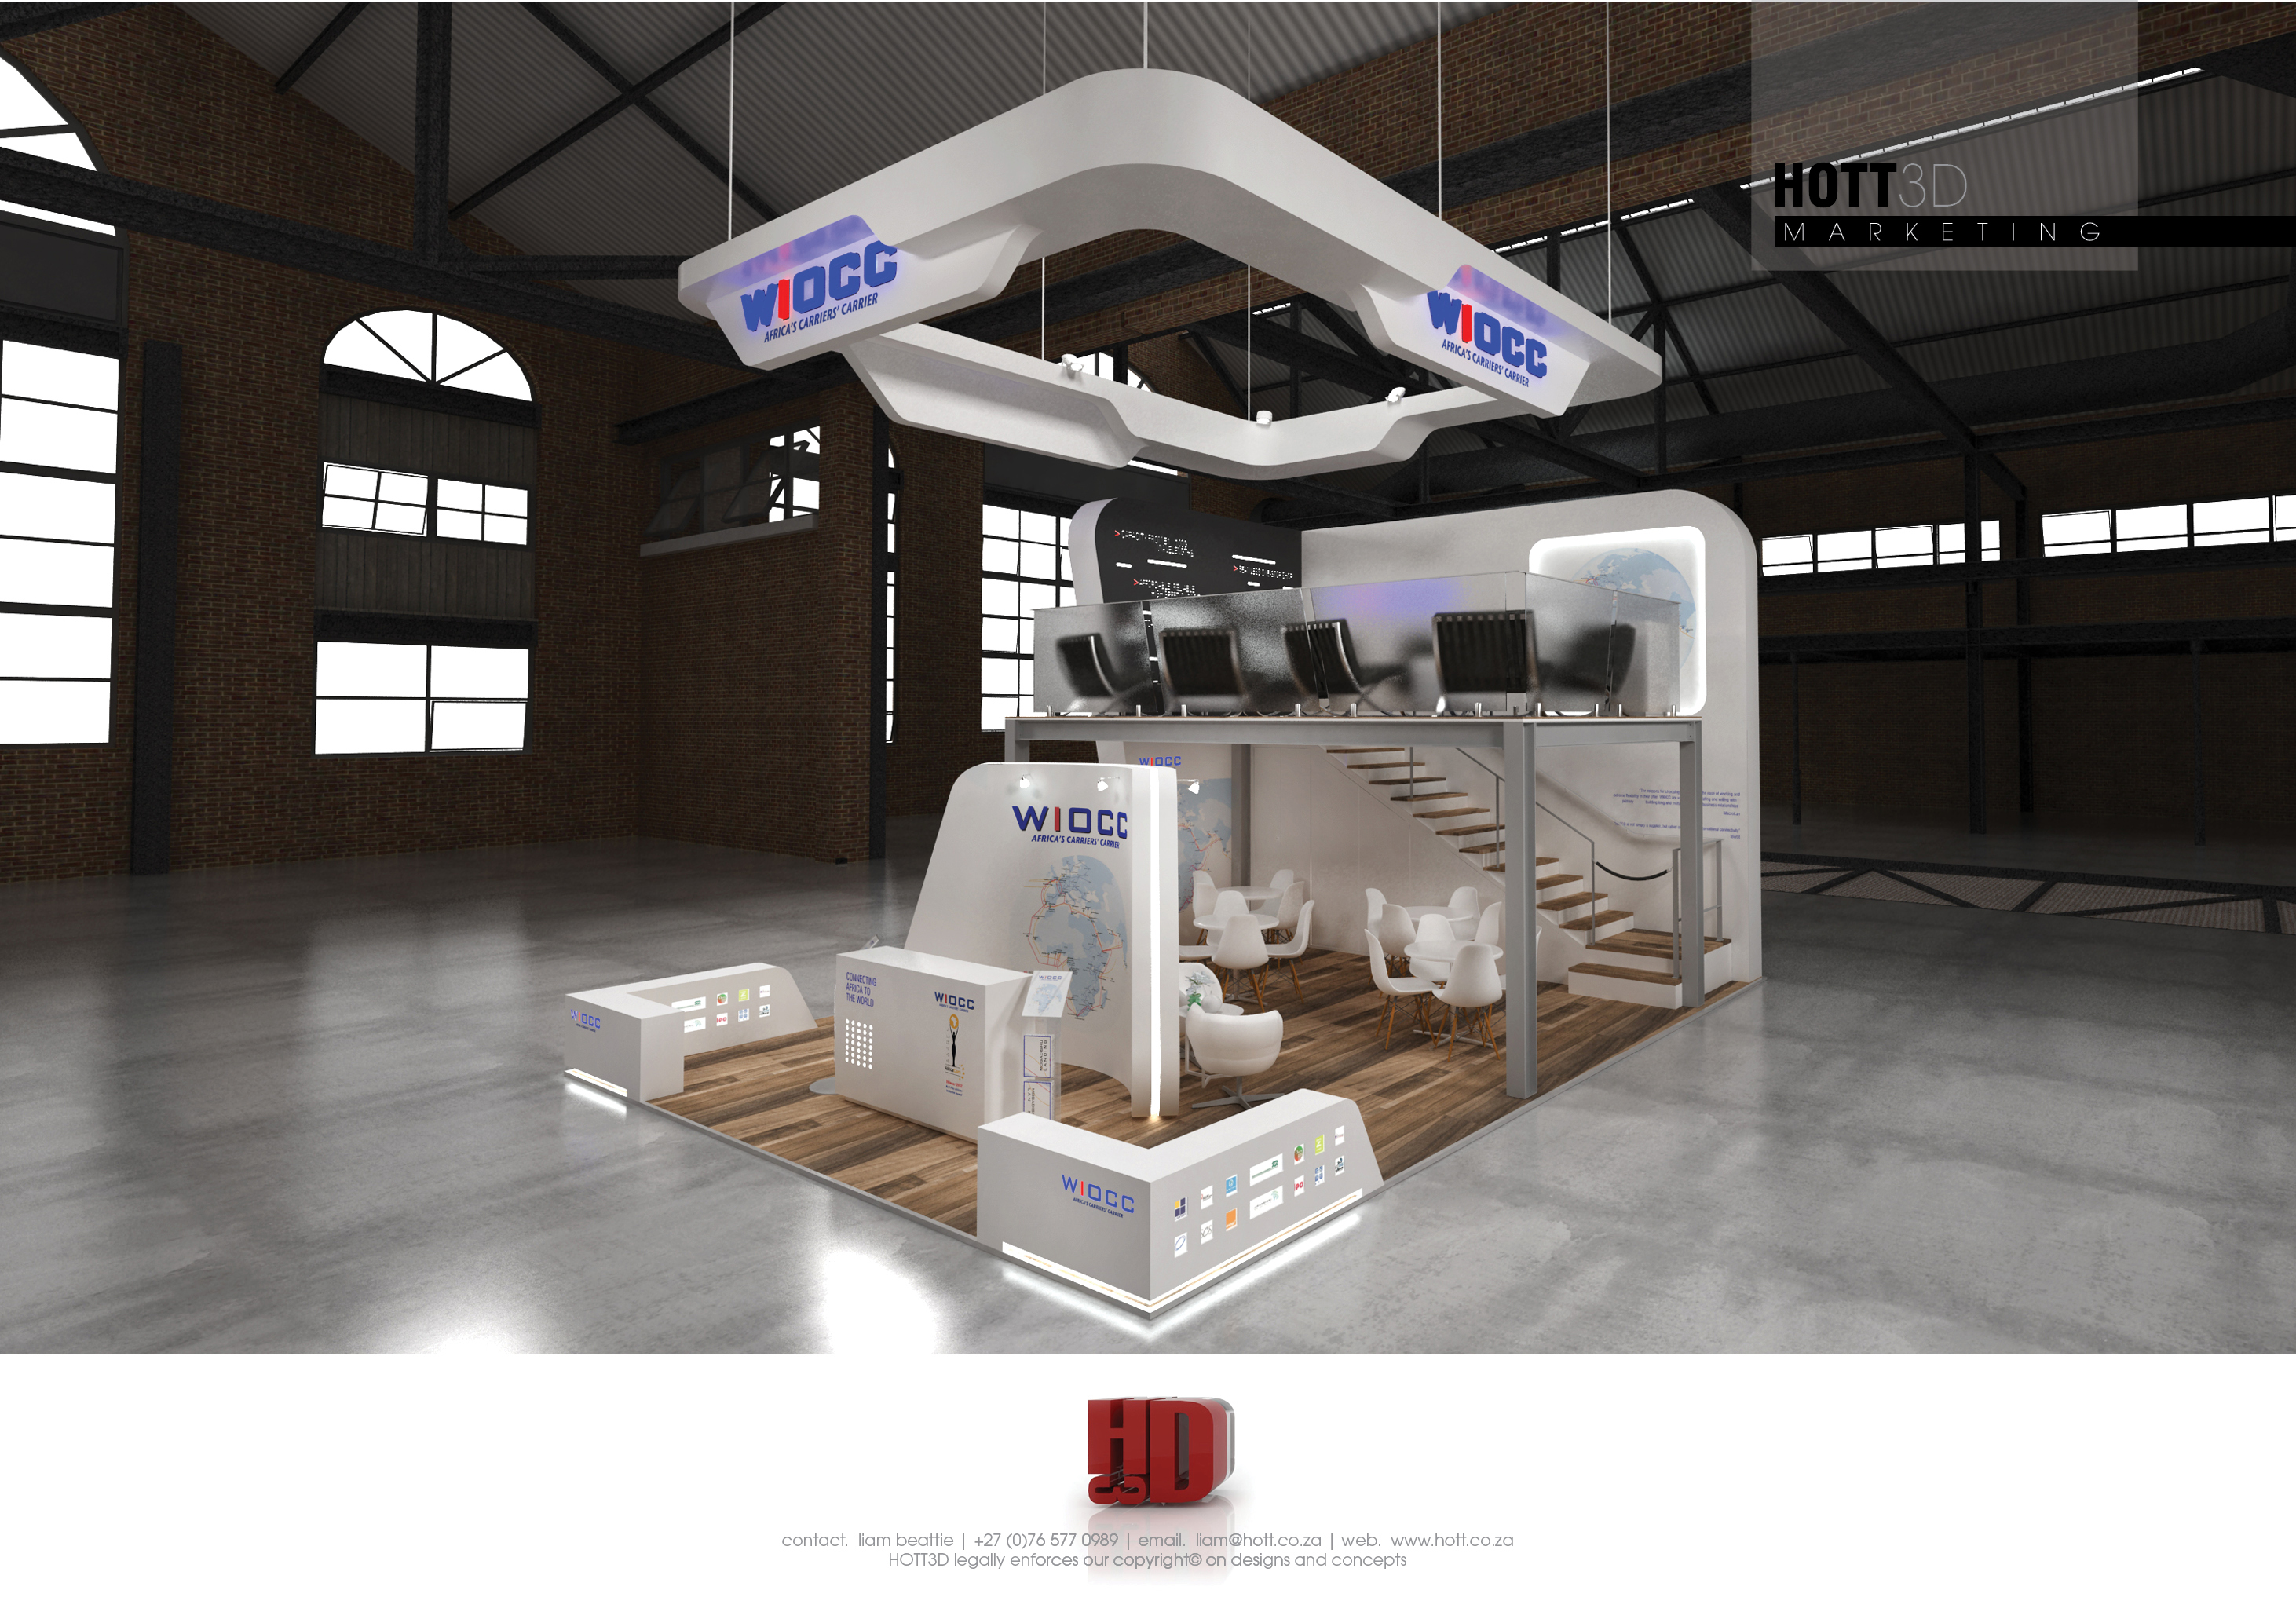 Exhibition Stand Rental Cape Town : Wiocc africacom full custom hott d exhibition